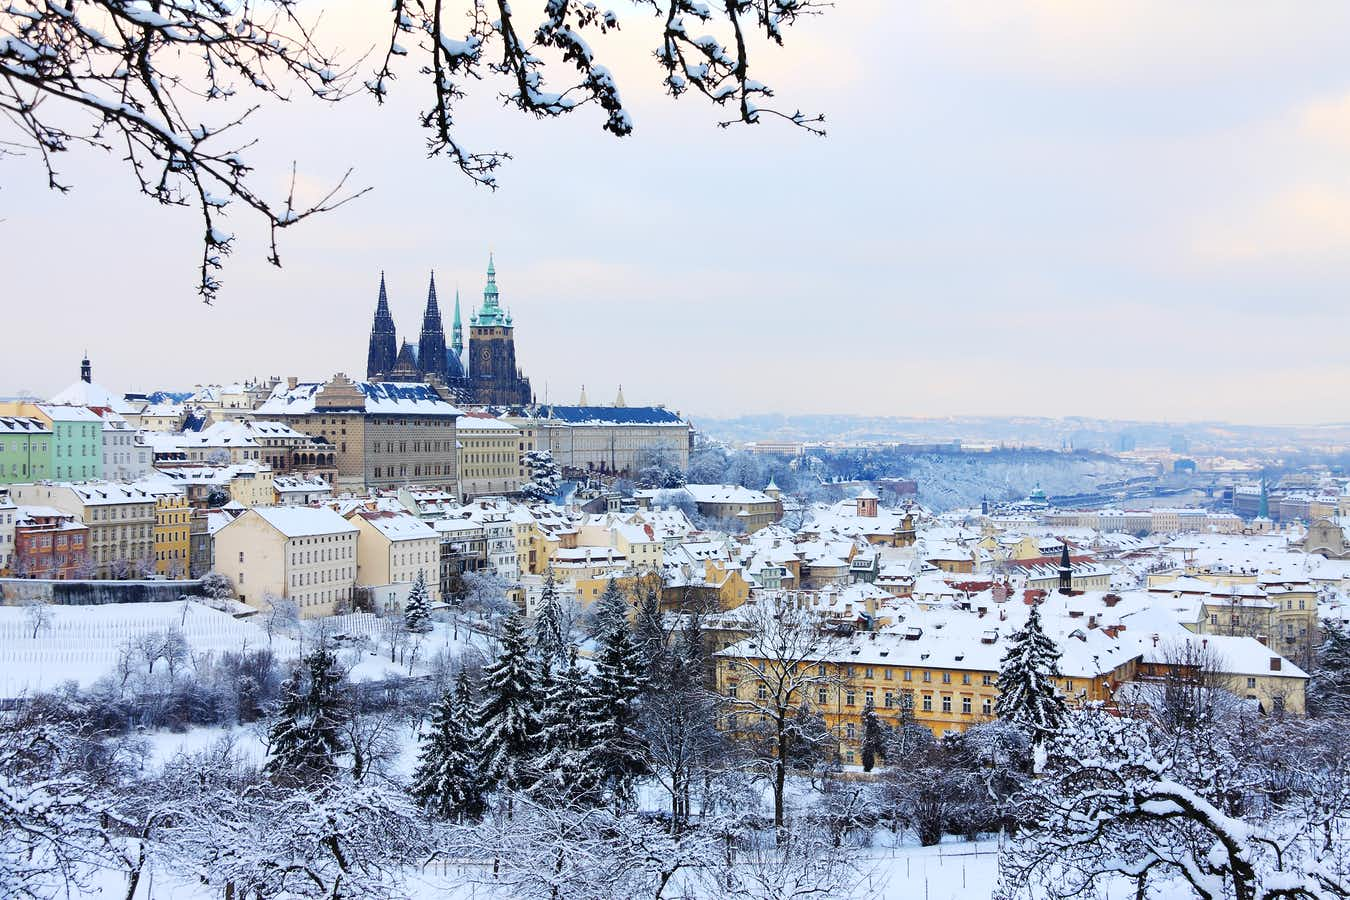 Christmas In Austria Holidays.Christmas In Austria Twixmas In Prague New Year In The